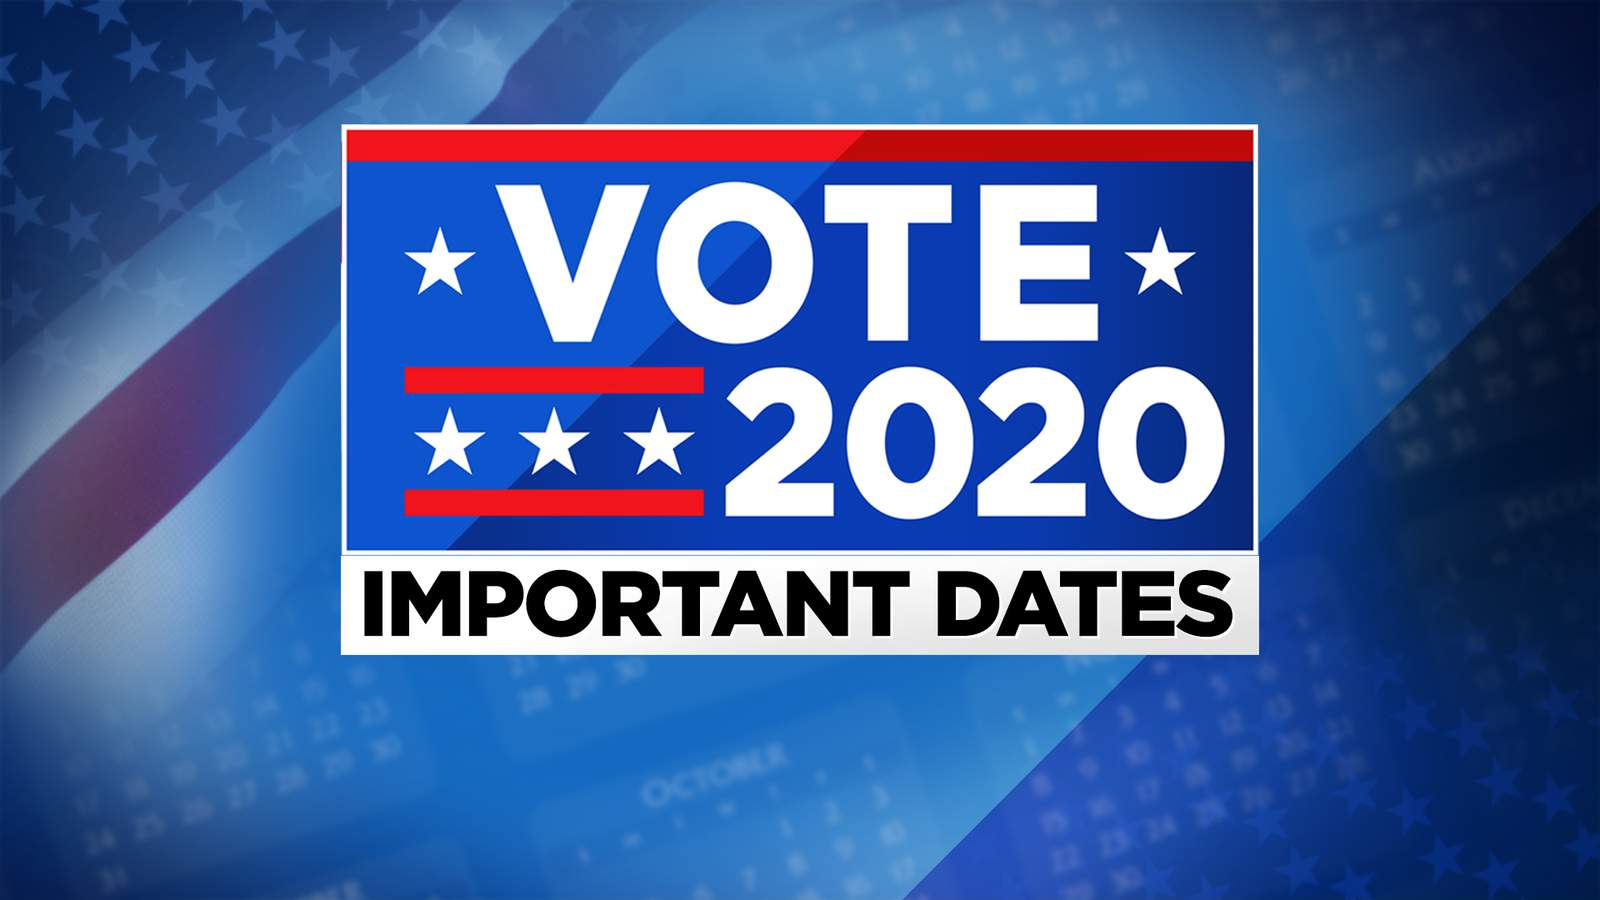 Texas Election Calendar 2021 Here are the 2020 election dates, deadlines you need to know about